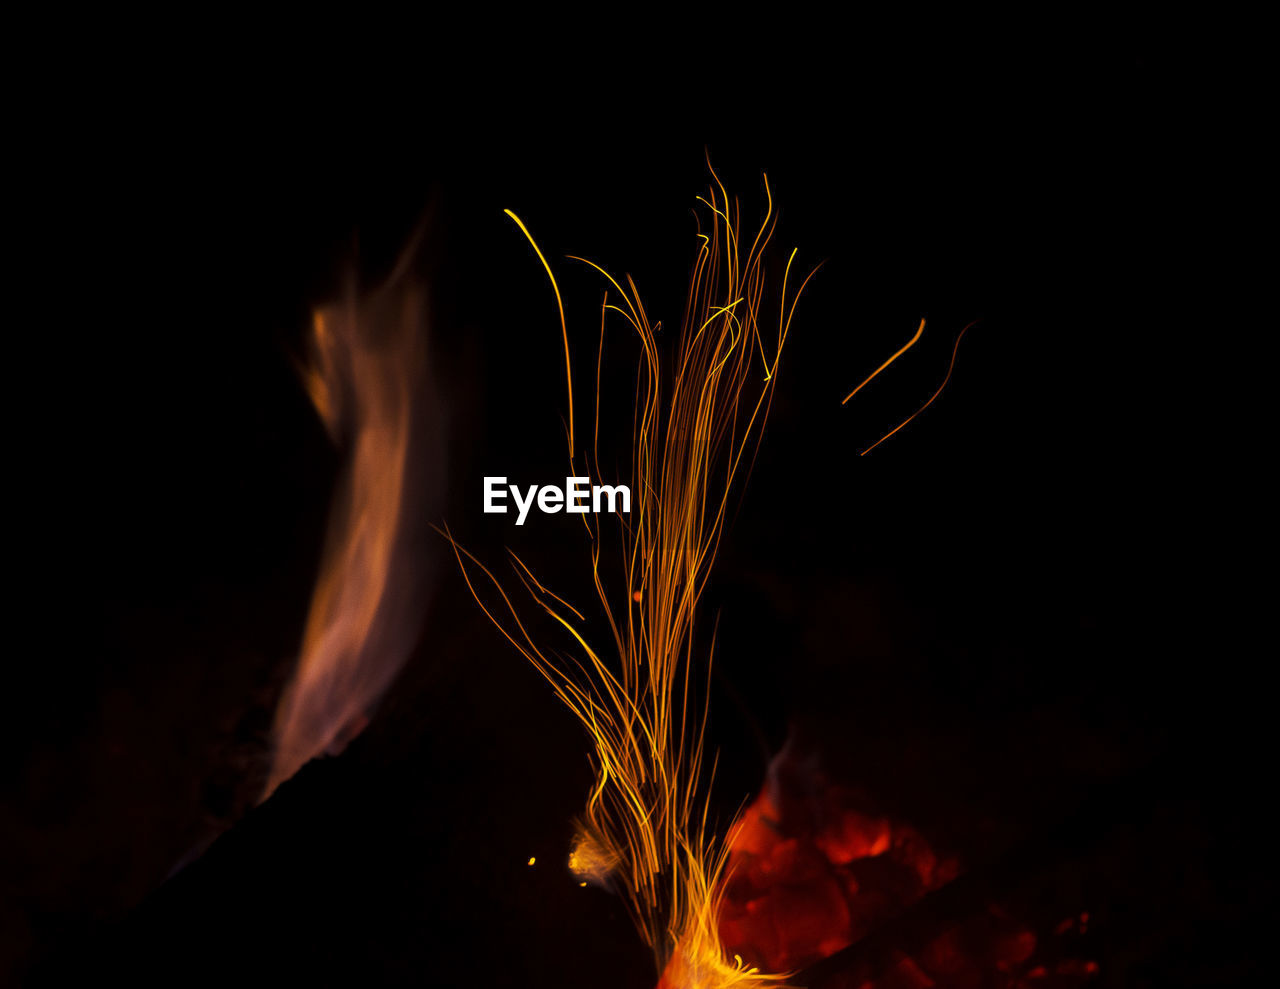 burning, night, heat - temperature, glowing, motion, flame, close-up, no people, long exposure, nature, beauty in nature, illuminated, bonfire, black background, outdoors